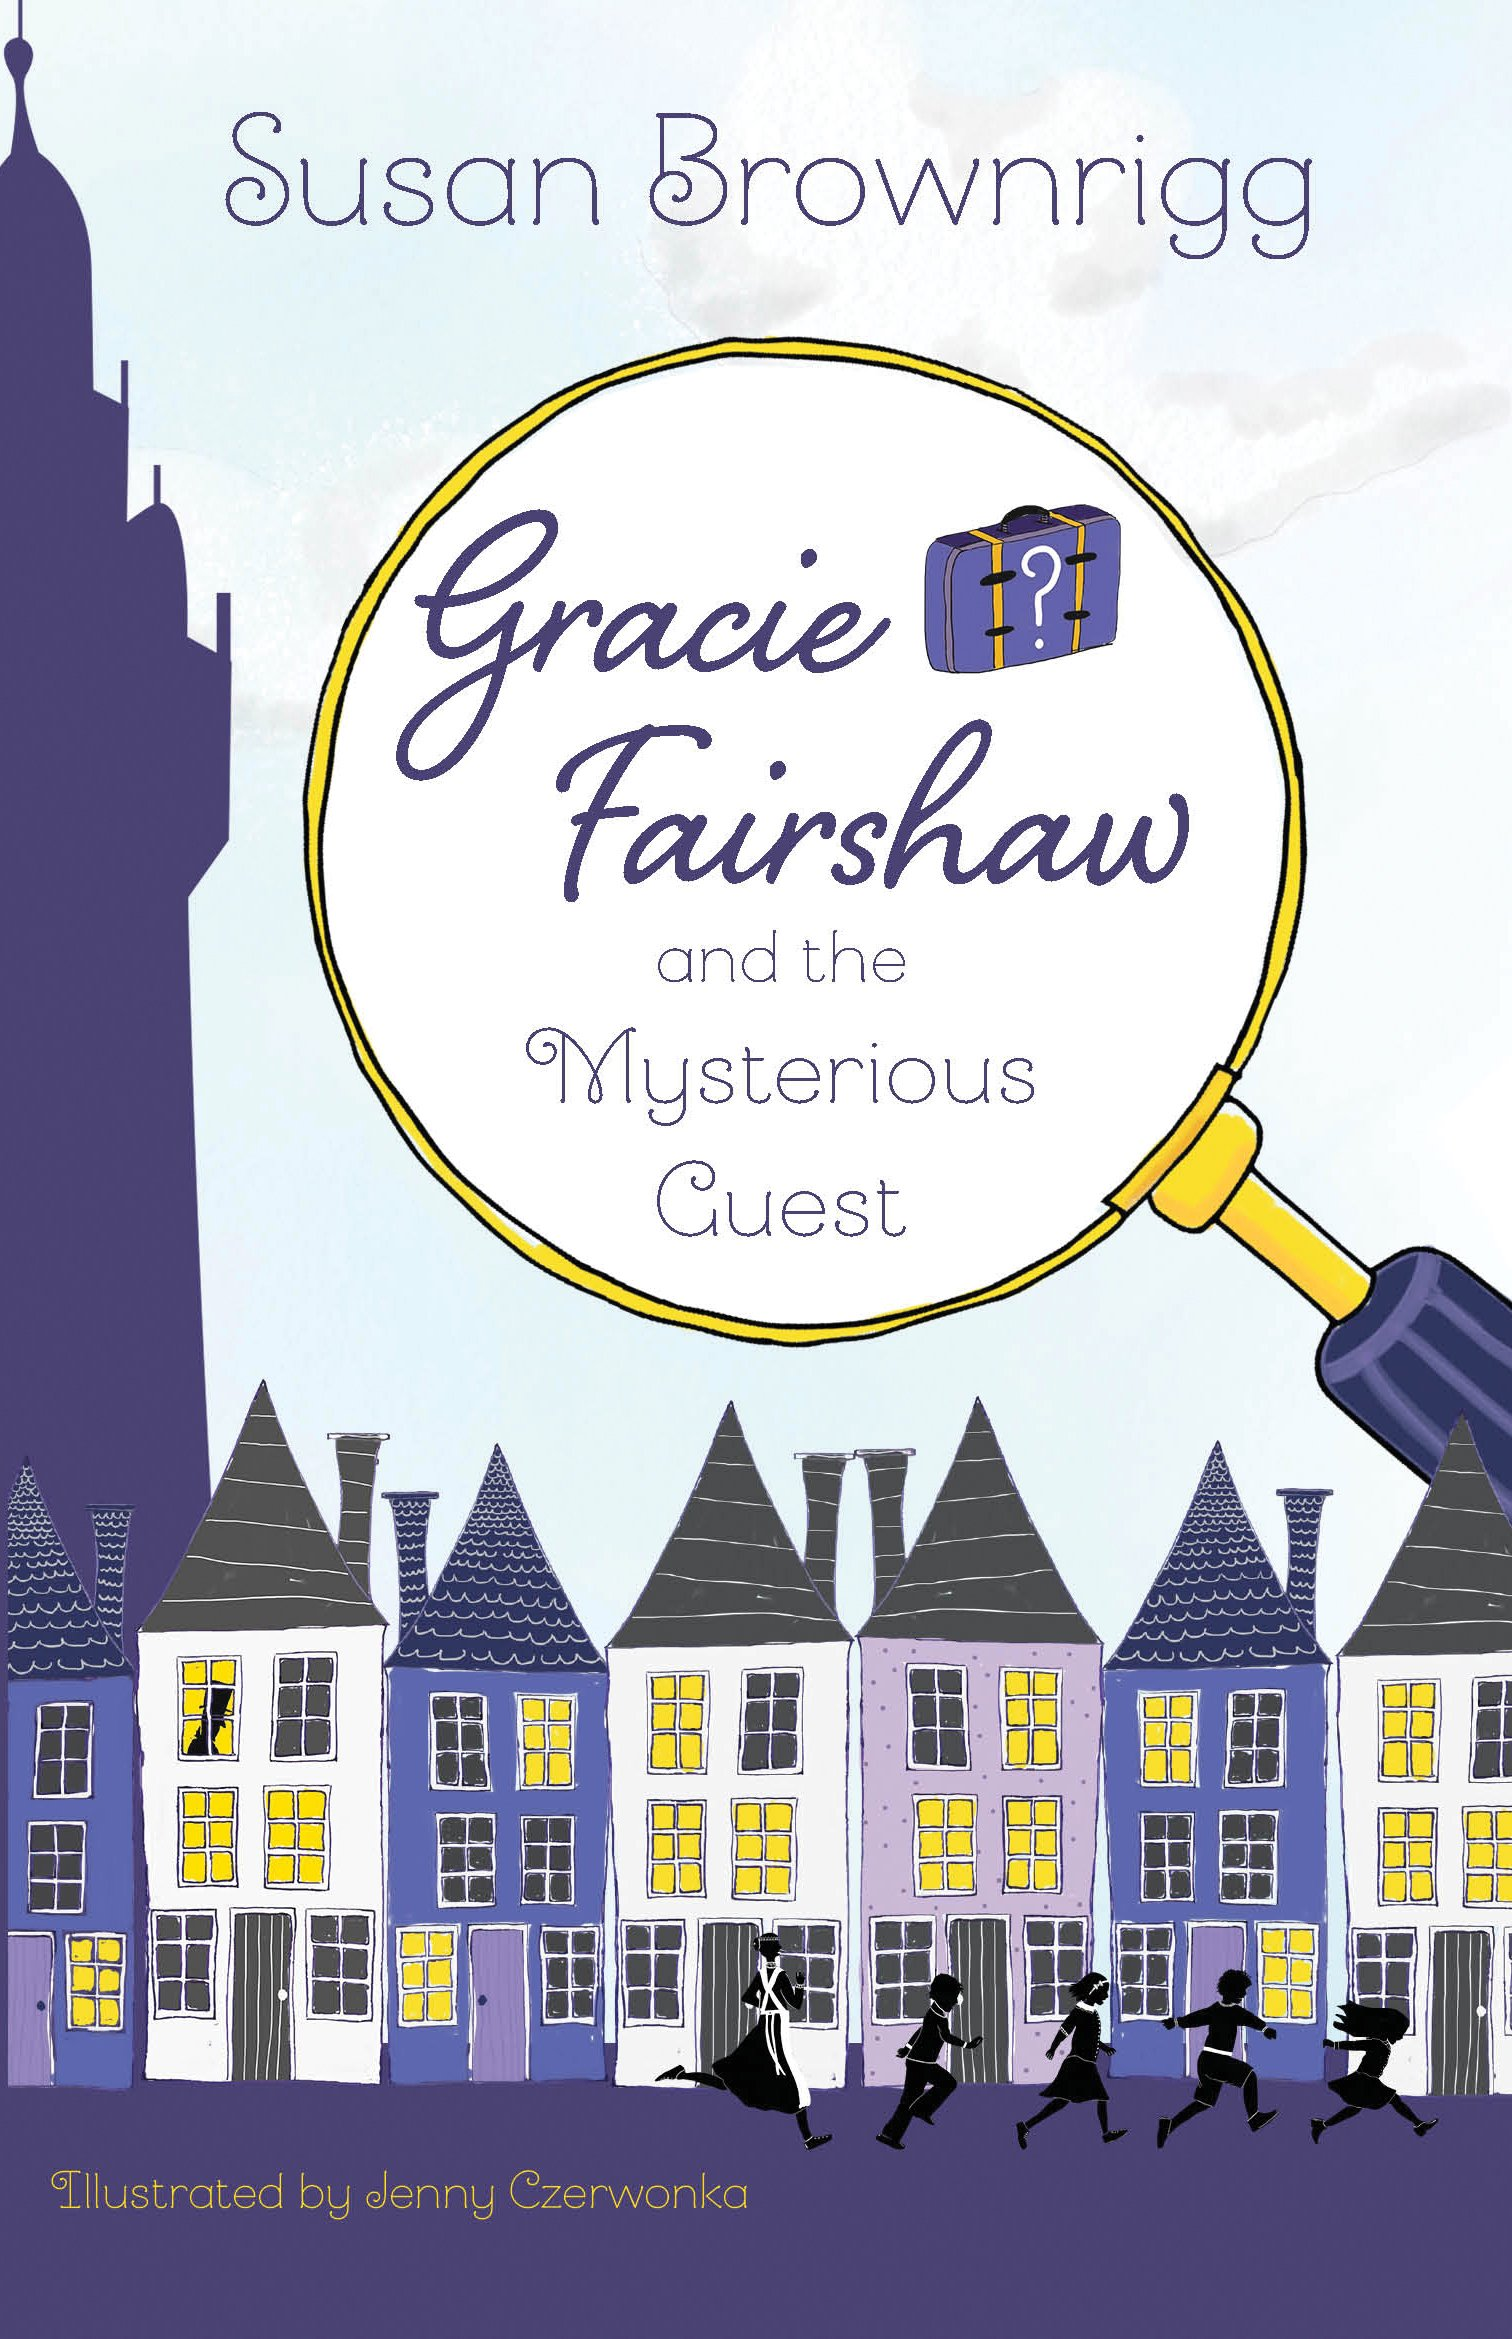 https://0201.nccdn.net/1_2/000/000/127/b21/cover-reveal-Gracie-Fairshaw-and-the-Mysterious-Guest.jpg